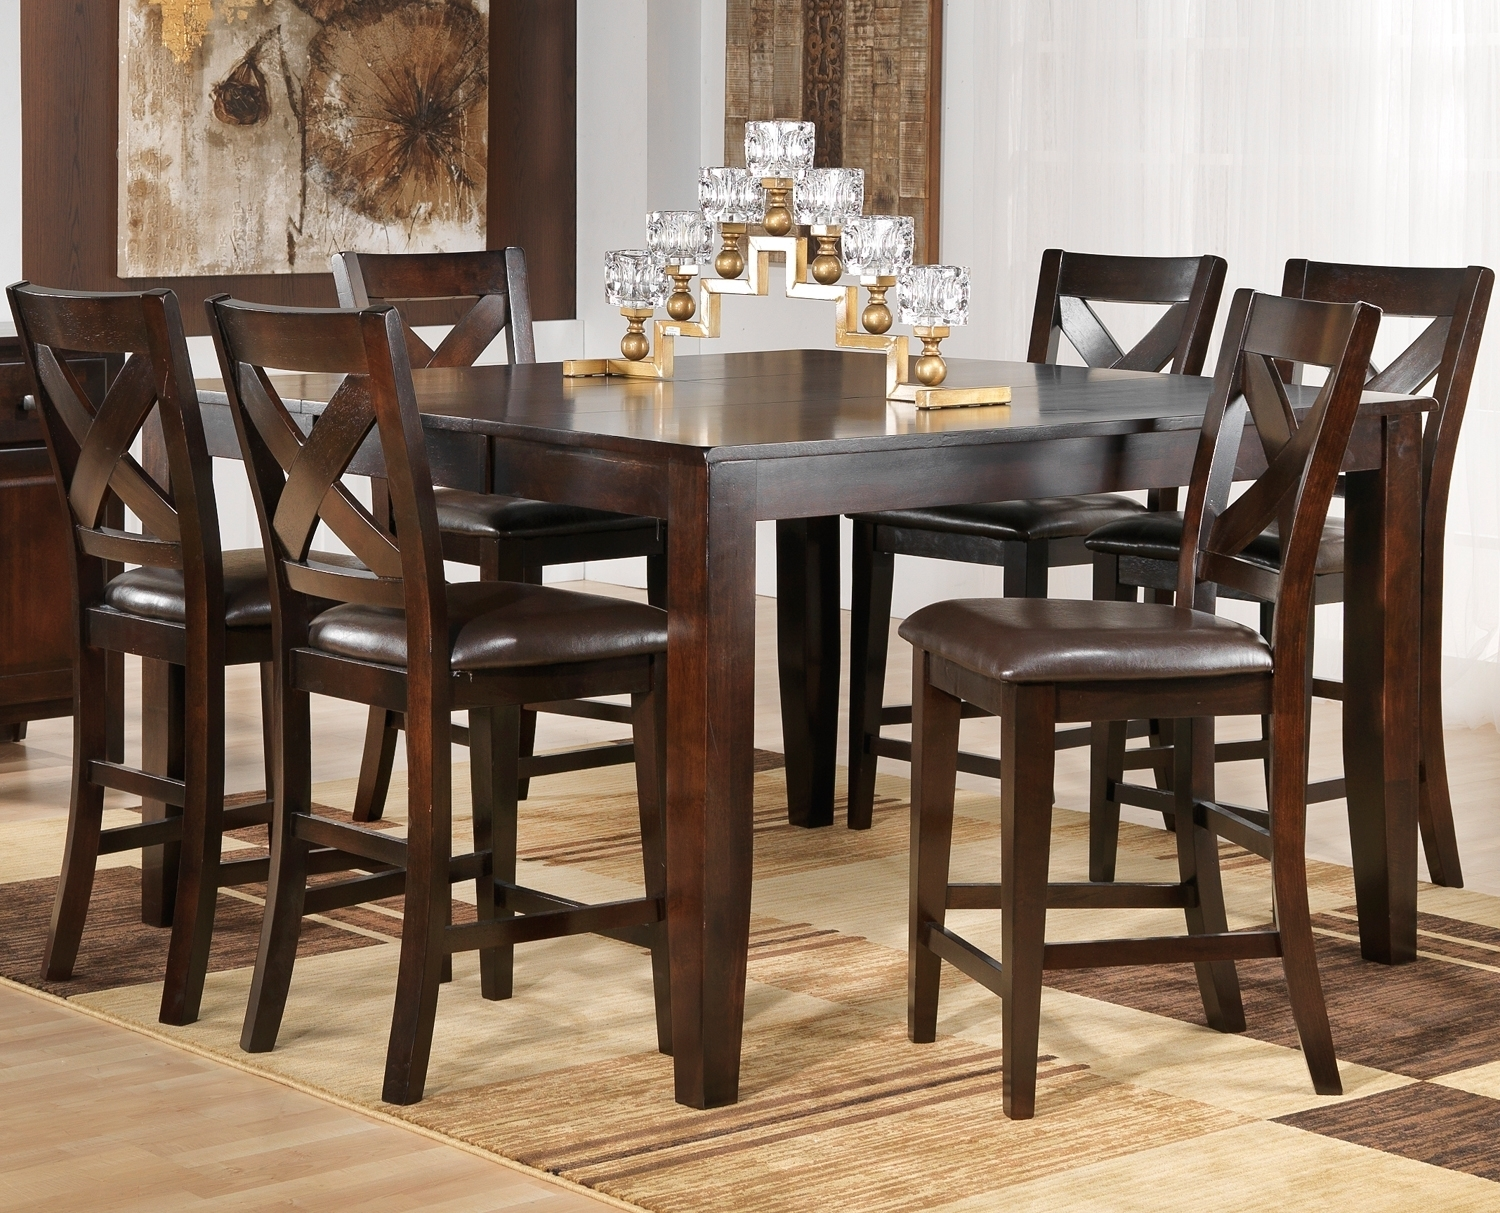 Pub Dining Table And Its Benefits – Home Decor Ideas In Most Recently Released Leon Dining Tables (View 11 of 20)